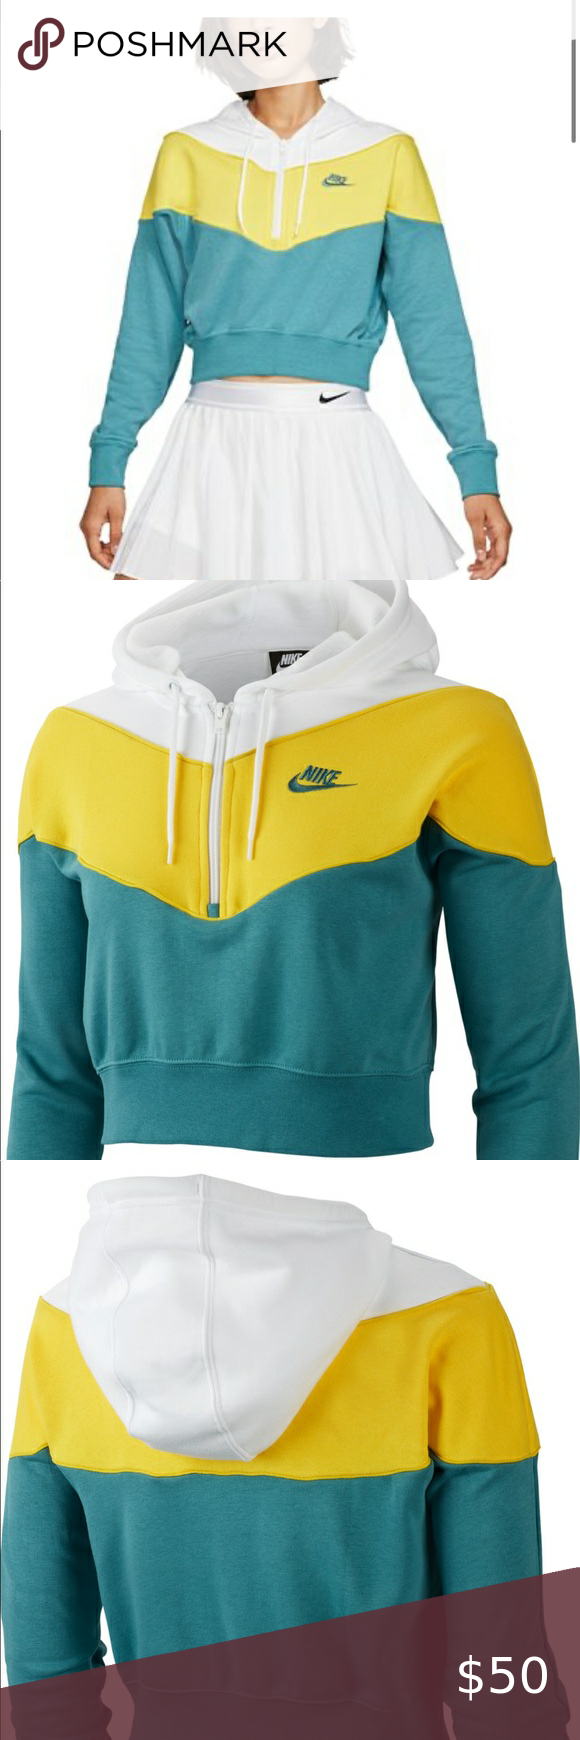 Nike Heritage Chevron Cropped Hoodie Nike Heritage Chevron Cropped Hoodie Size Large Loose Fit Super Soft Inside New Wit Cropped Hoodie Hoodies Clothes Design [ 1740 x 580 Pixel ]